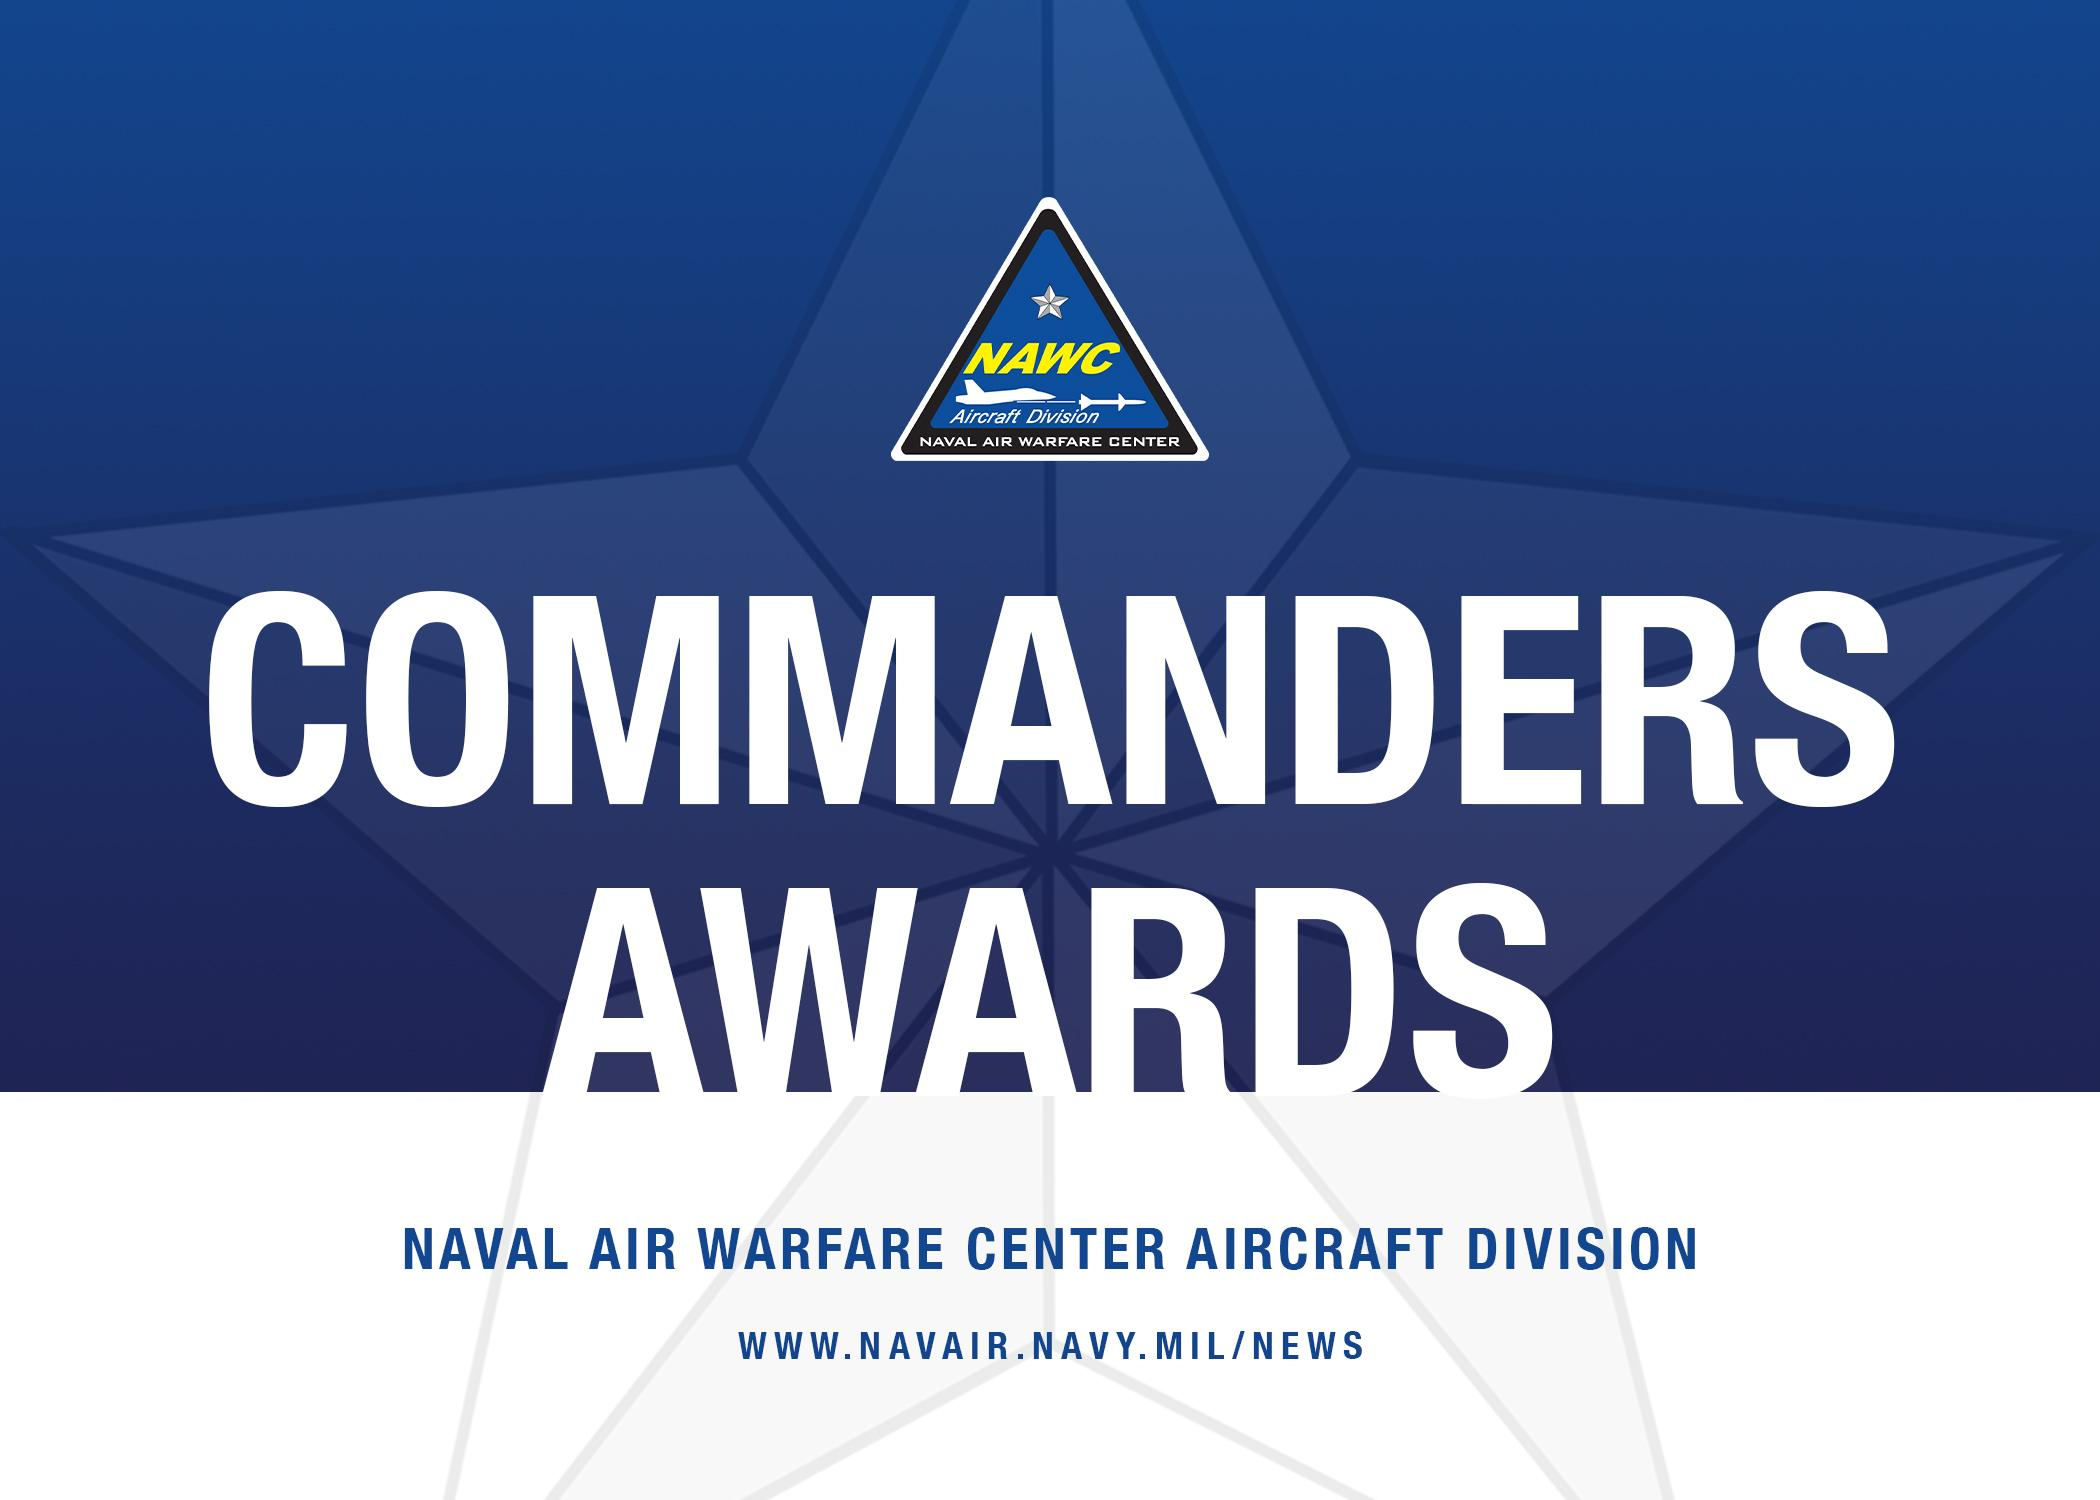 Naval Air Warfare Center Aircraft Division's Commander's Awards graphic